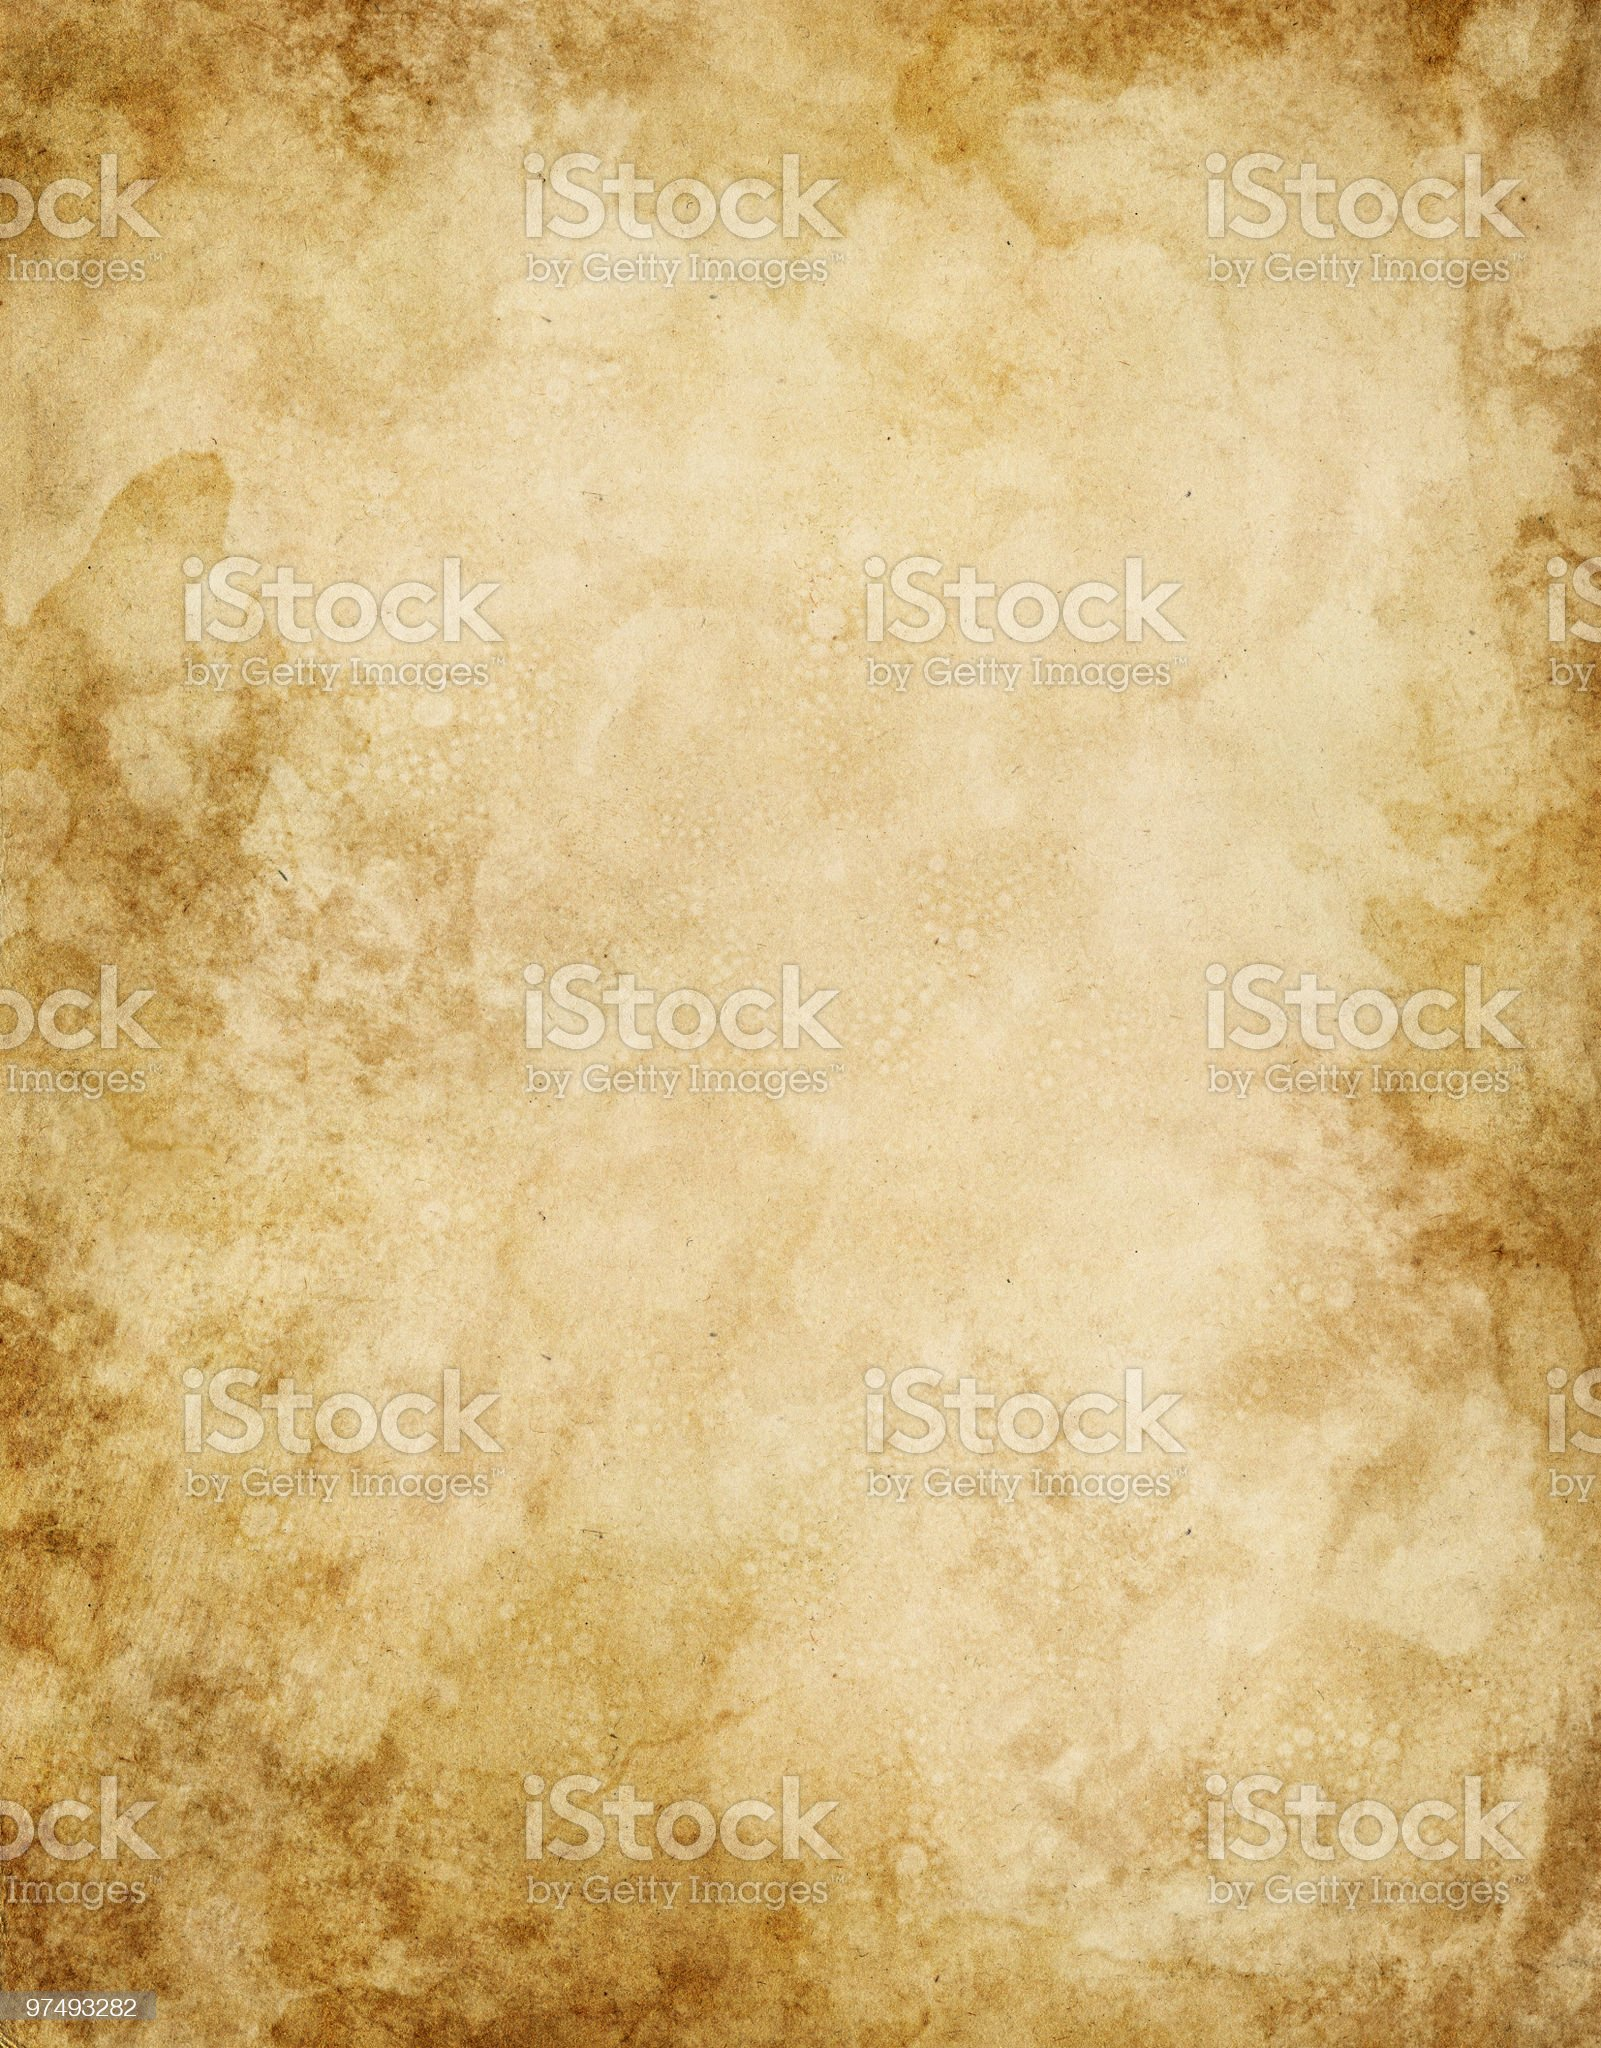 Old Water Stained Paper royalty-free stock photo